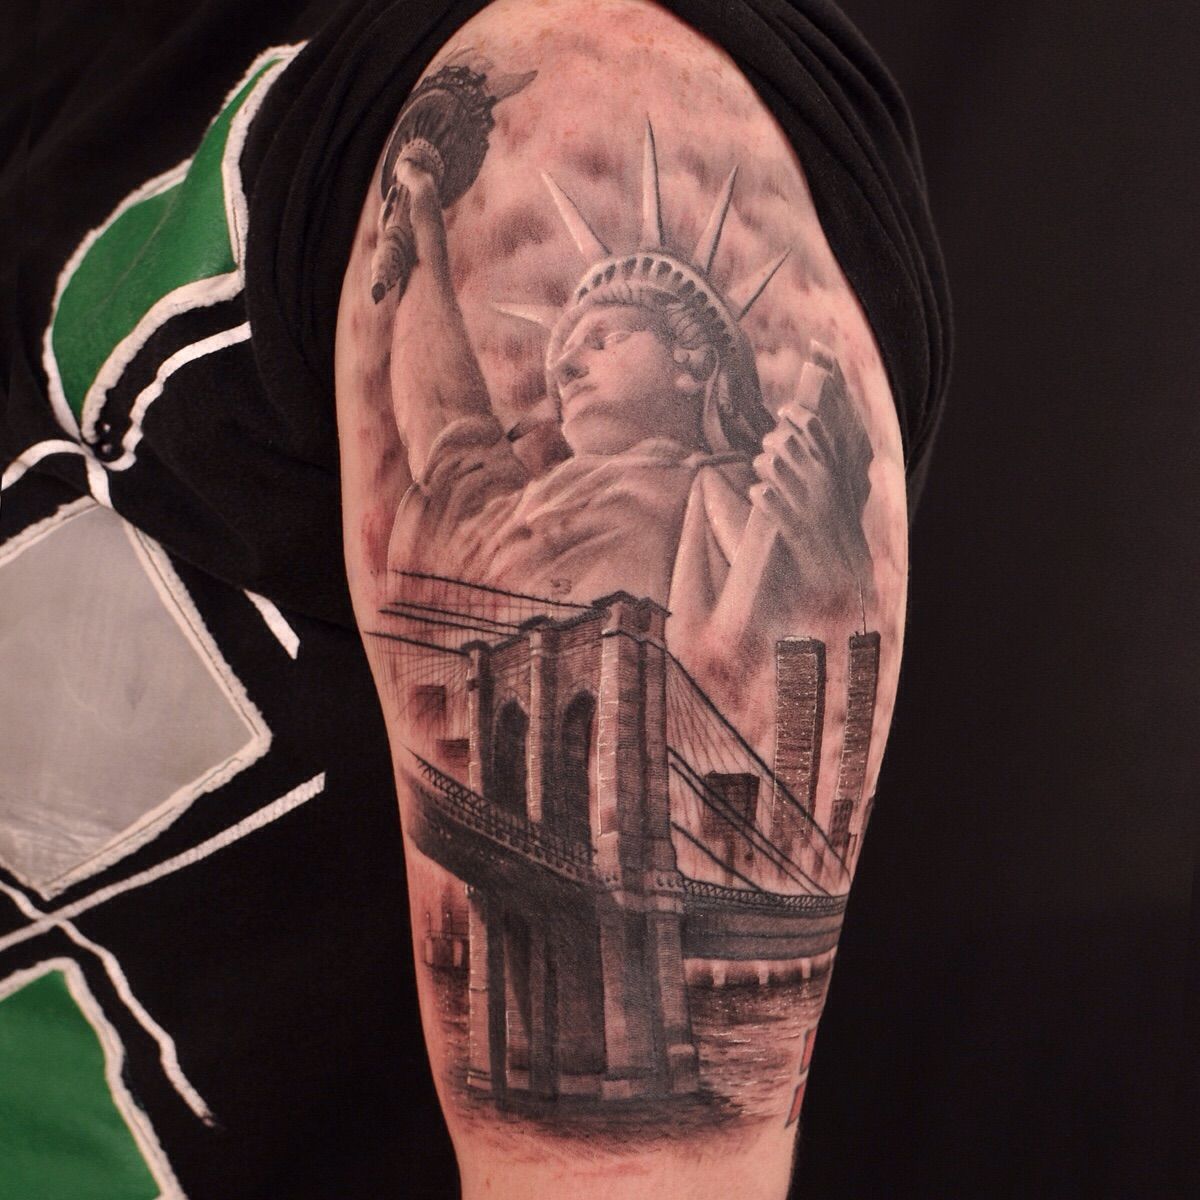 new york sleeve tattoo google search tattos pinterest tattoo tattos and tatt. Black Bedroom Furniture Sets. Home Design Ideas